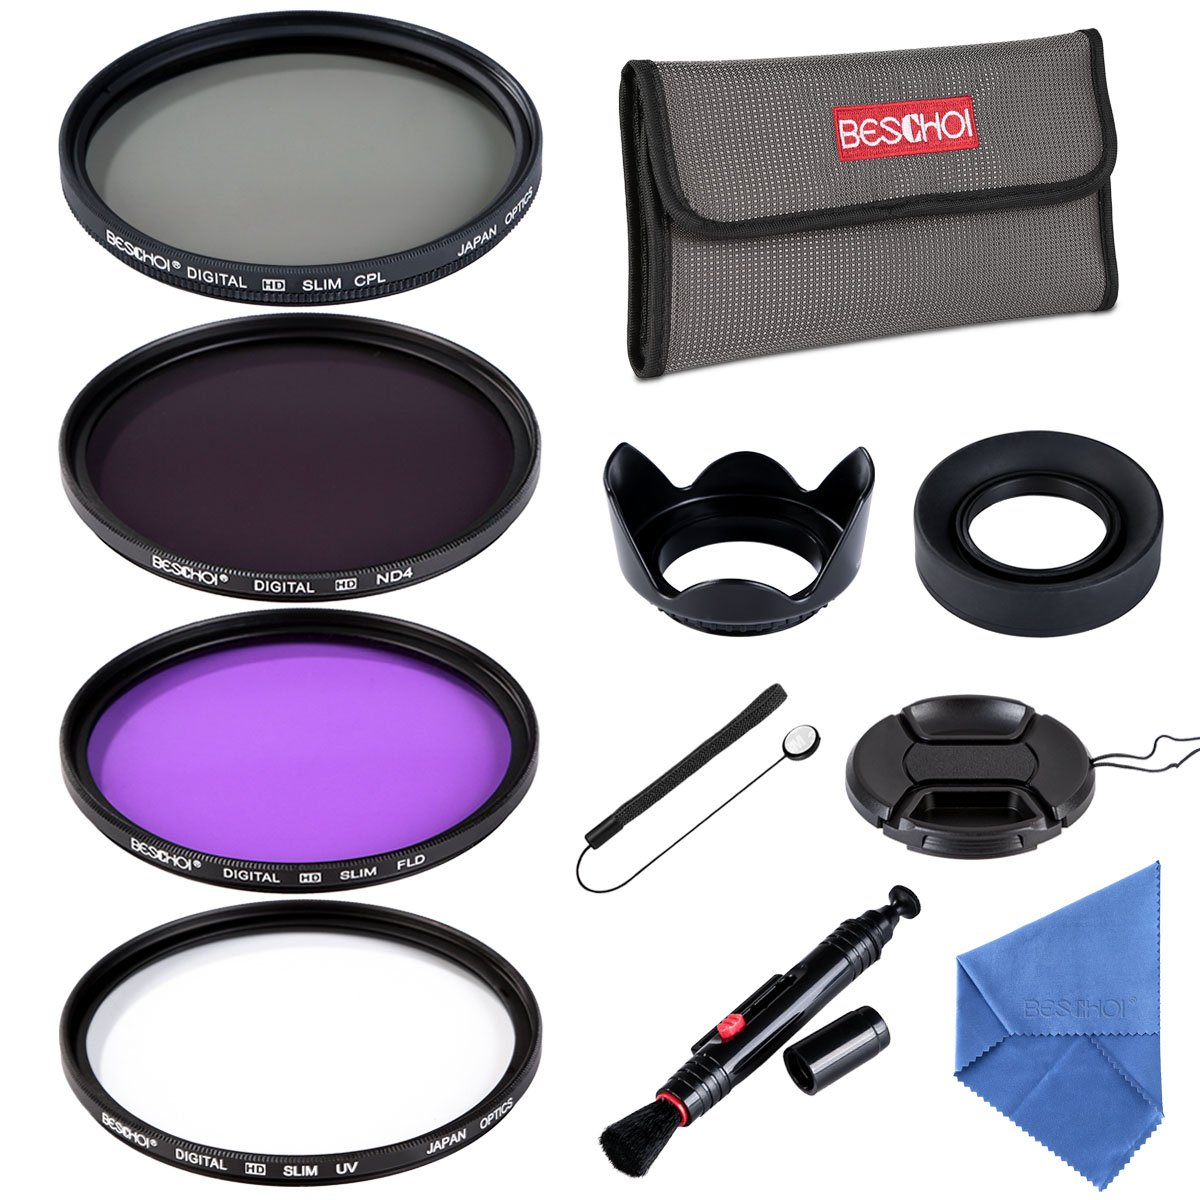 Beschoi 58mm UV CPL FLD ND4 Neutral Density Lens Filter Photography Lens Accessories Kit for Canon Nikon and Other Camera Lens with 58mm Filter Thread + Lens Cap + Lens Hood + Filter Pouch by Beschoi